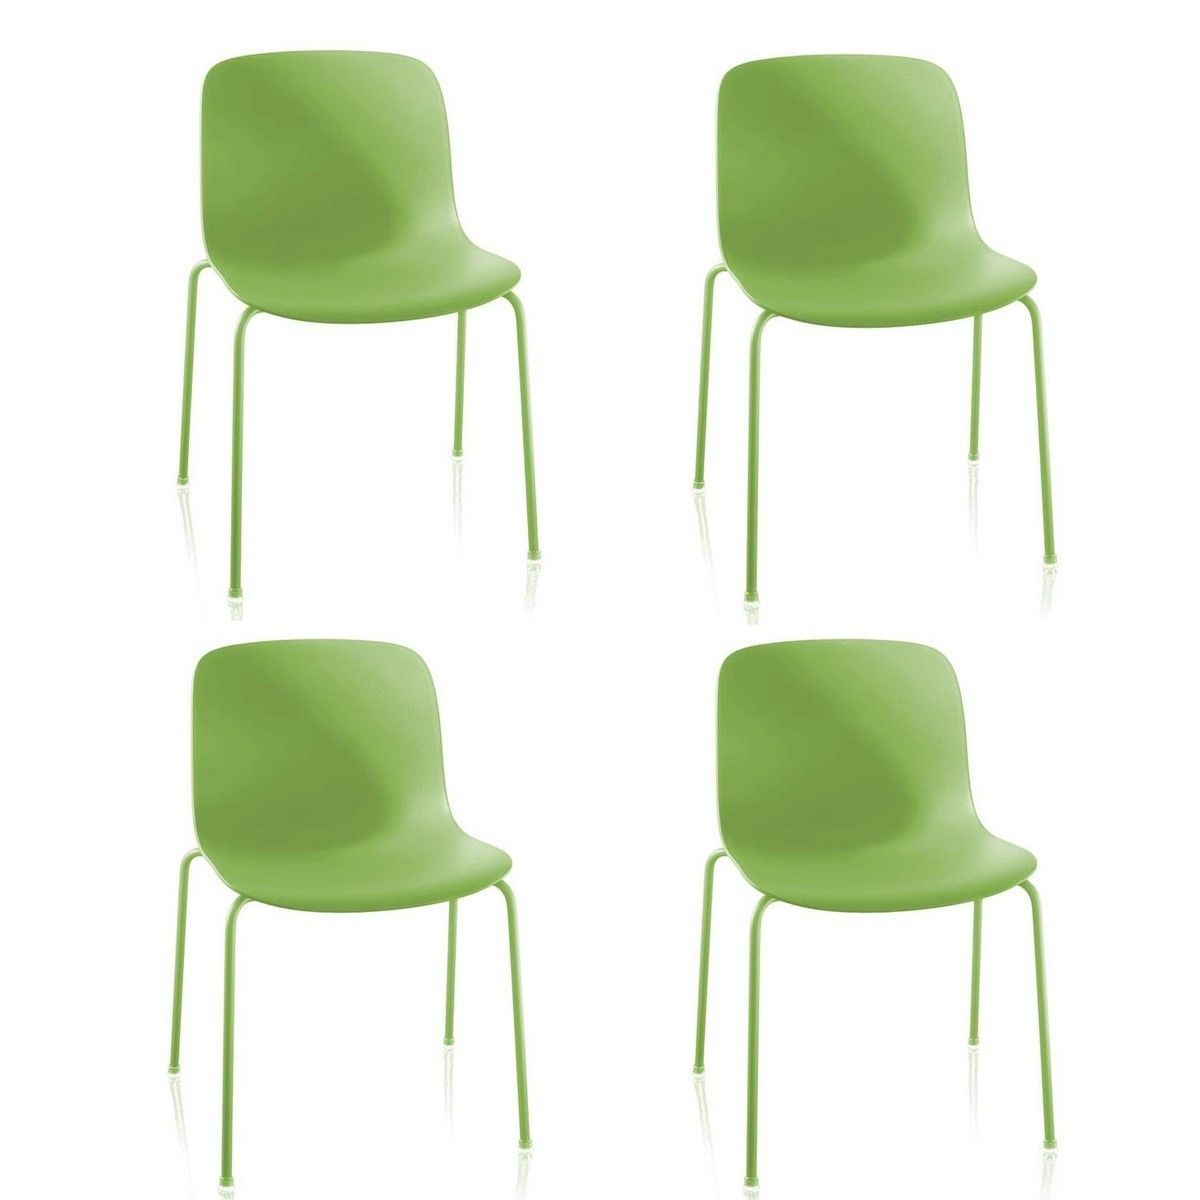 Magis troy chair outdoor set of 4 magis for Magis chair